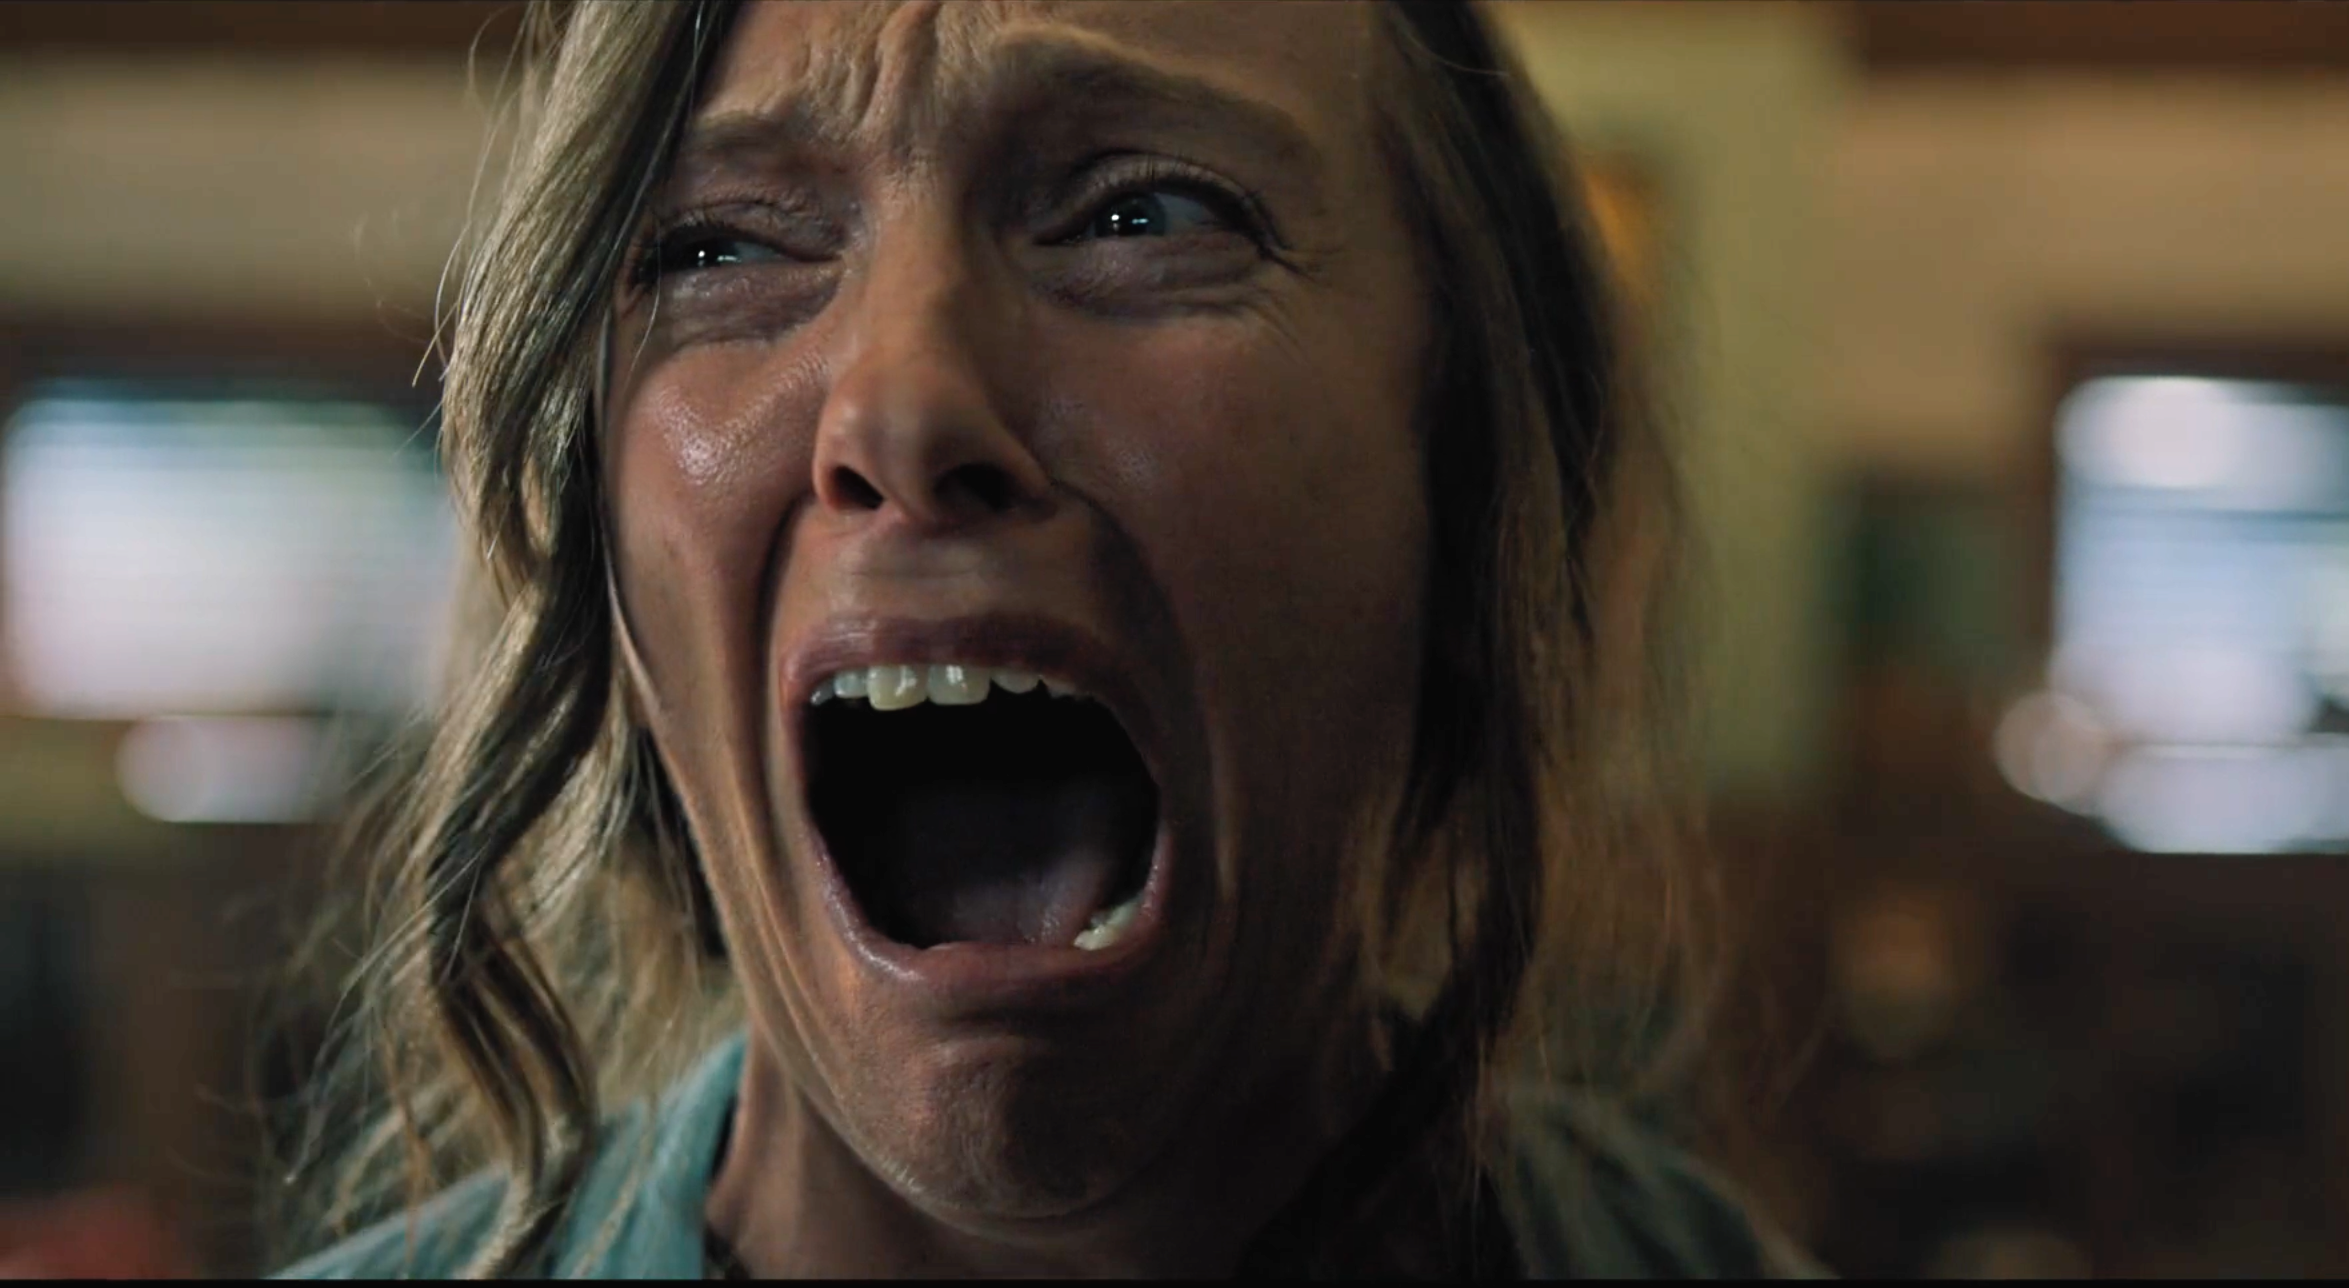 Toni Collette stars, terrifyingly and terrified, in Hereditary.